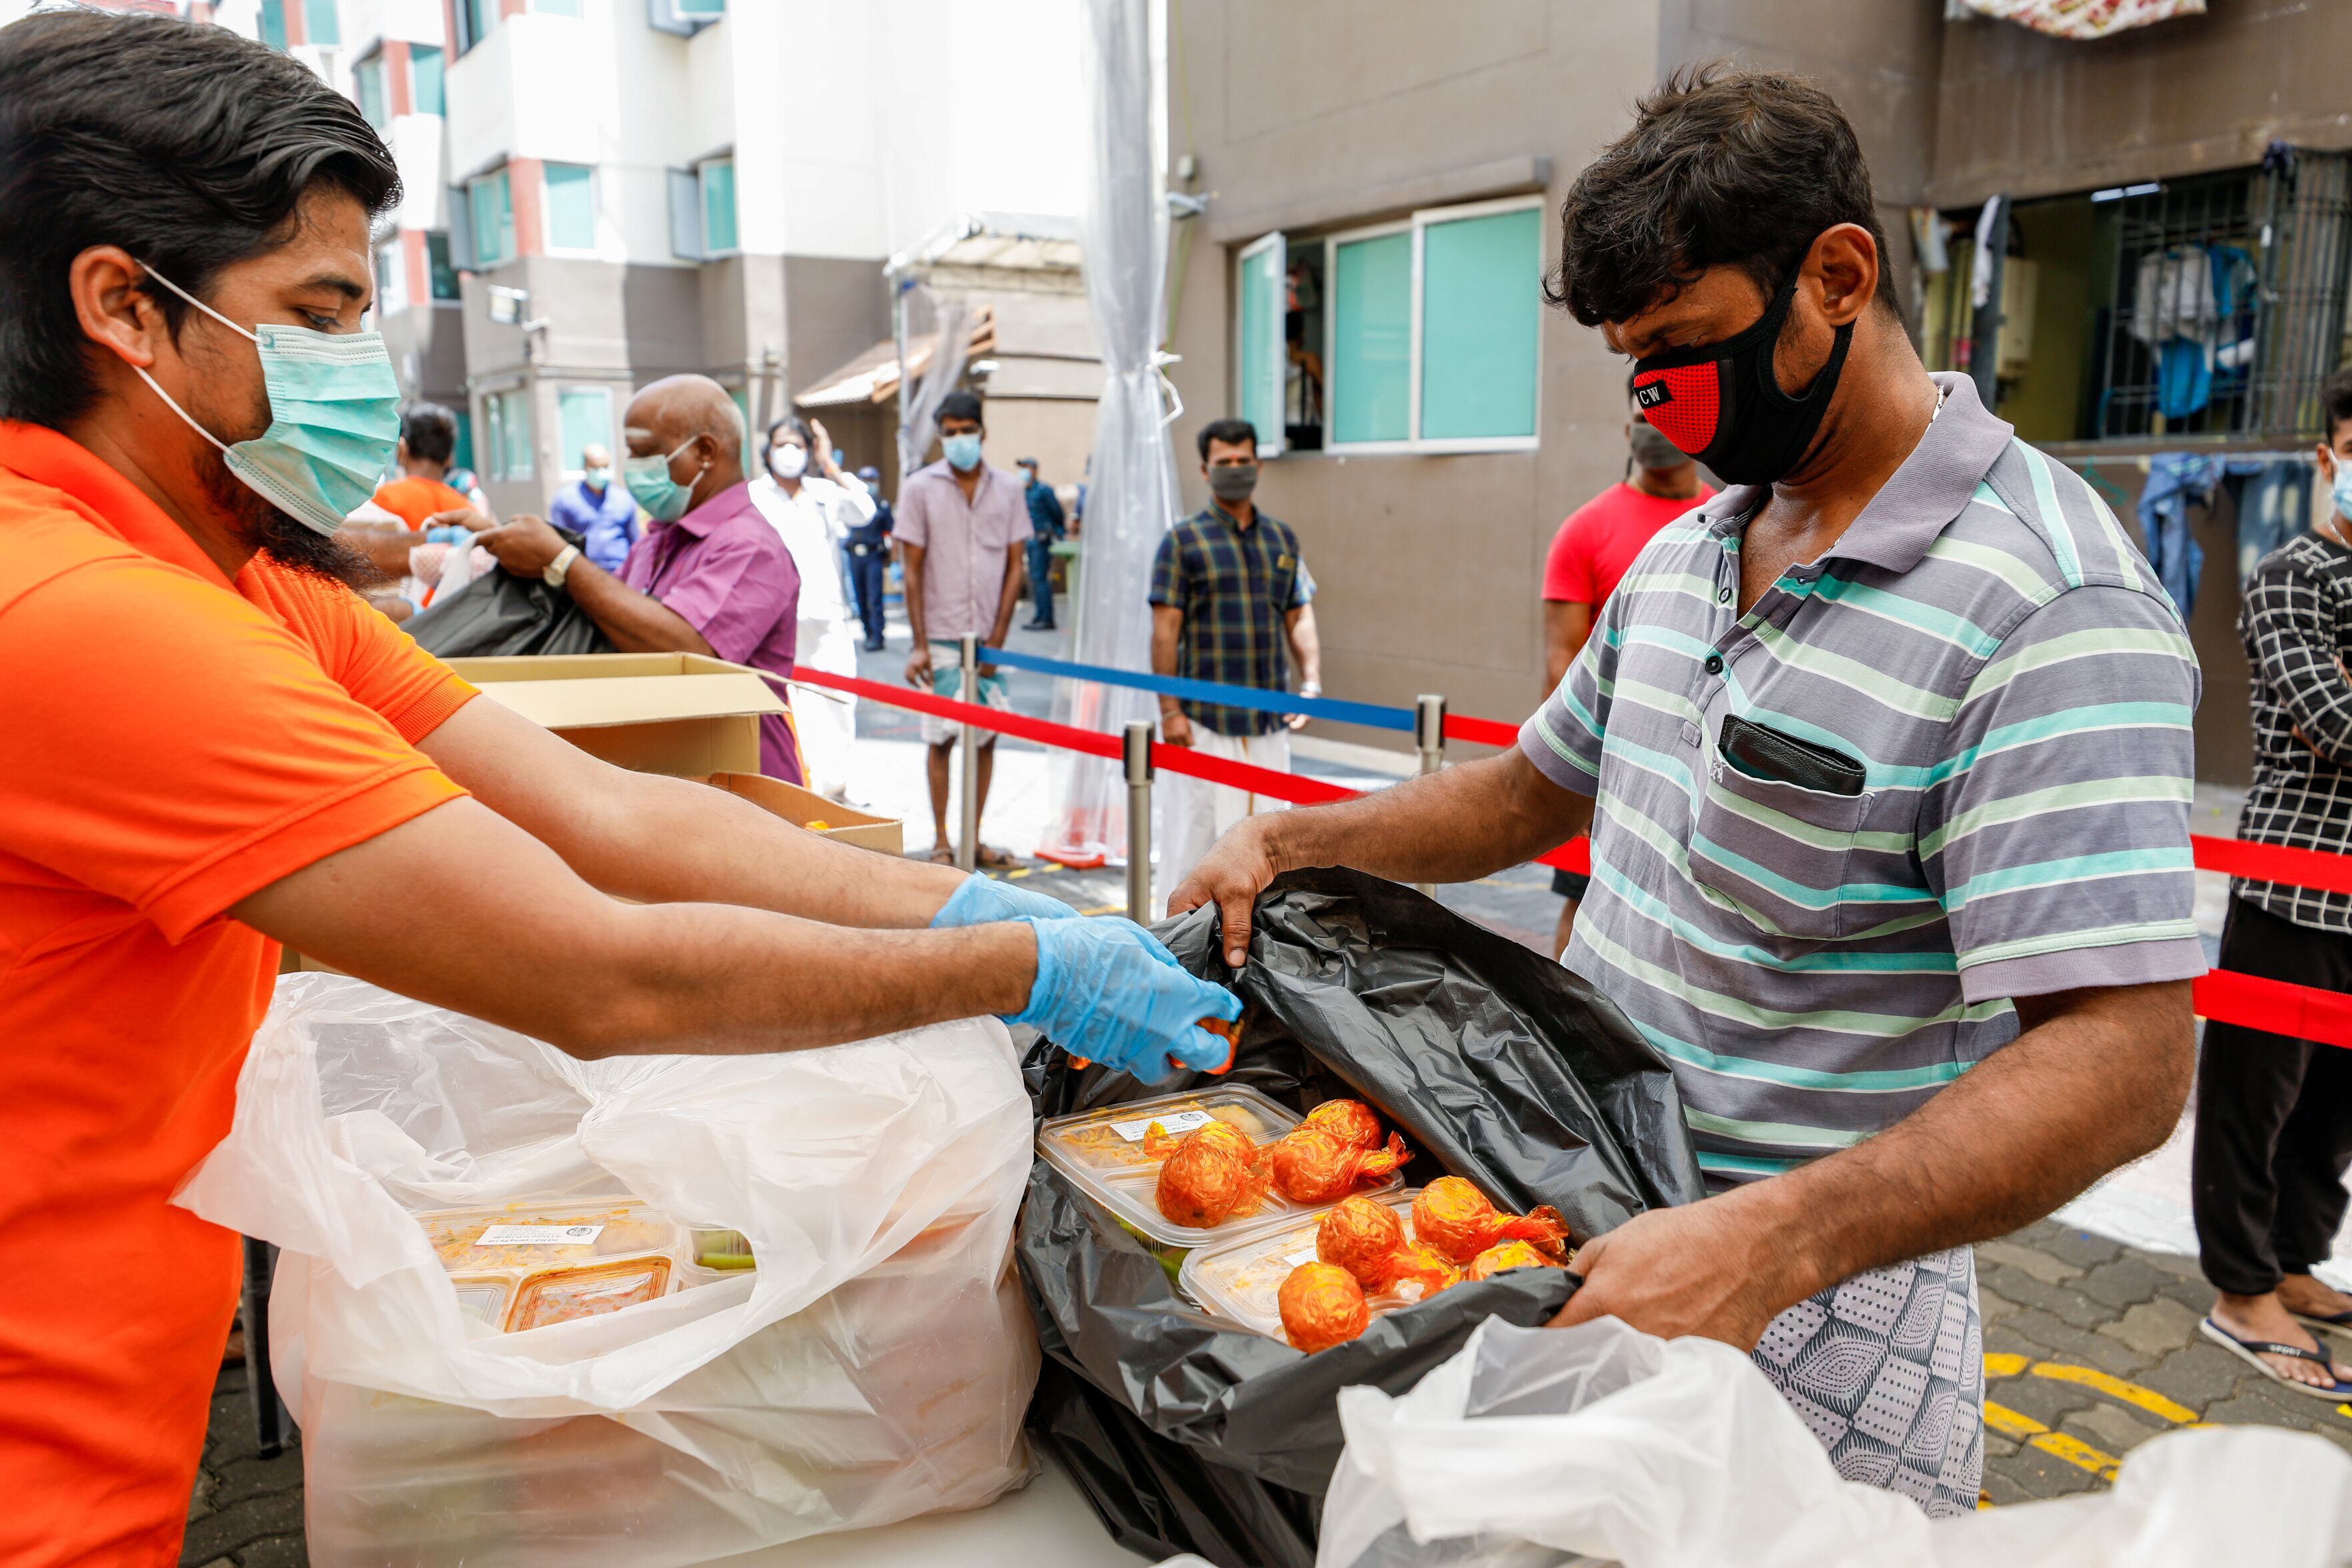 Workers at Westlite Toh Guan collecting sweets during lunch. Photo courtesy: Ministry of Manpower (MOM)